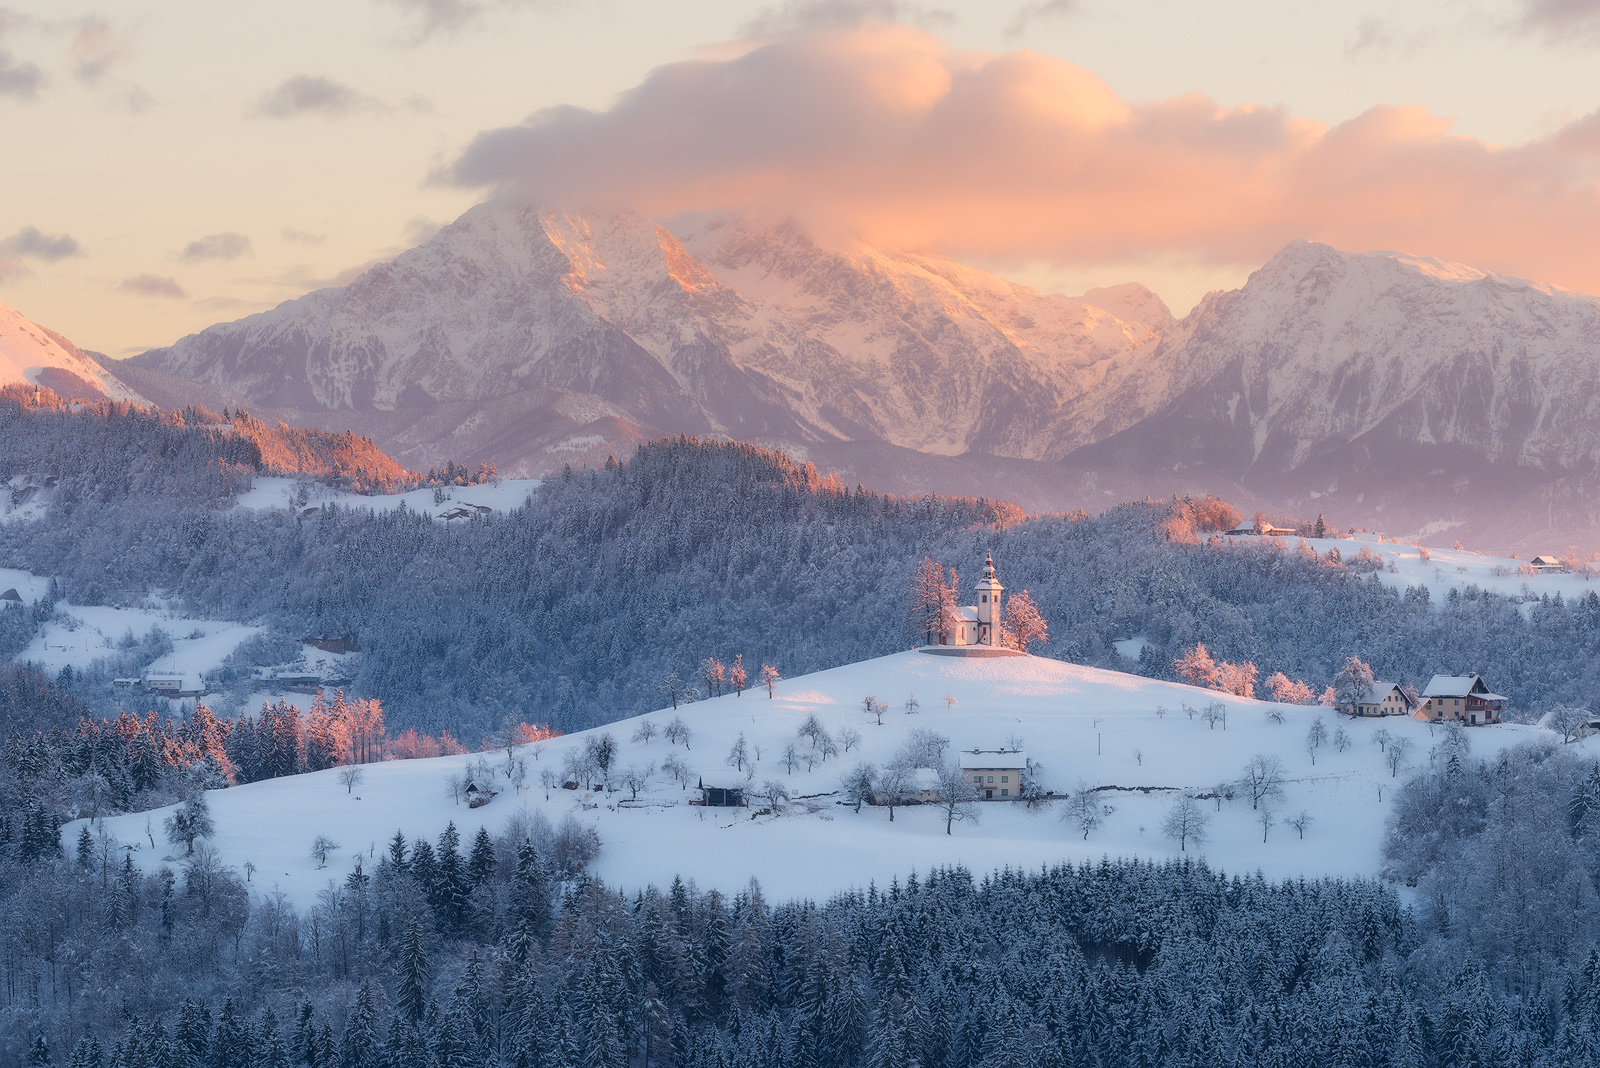 Top 5 photography spots in Slovenia